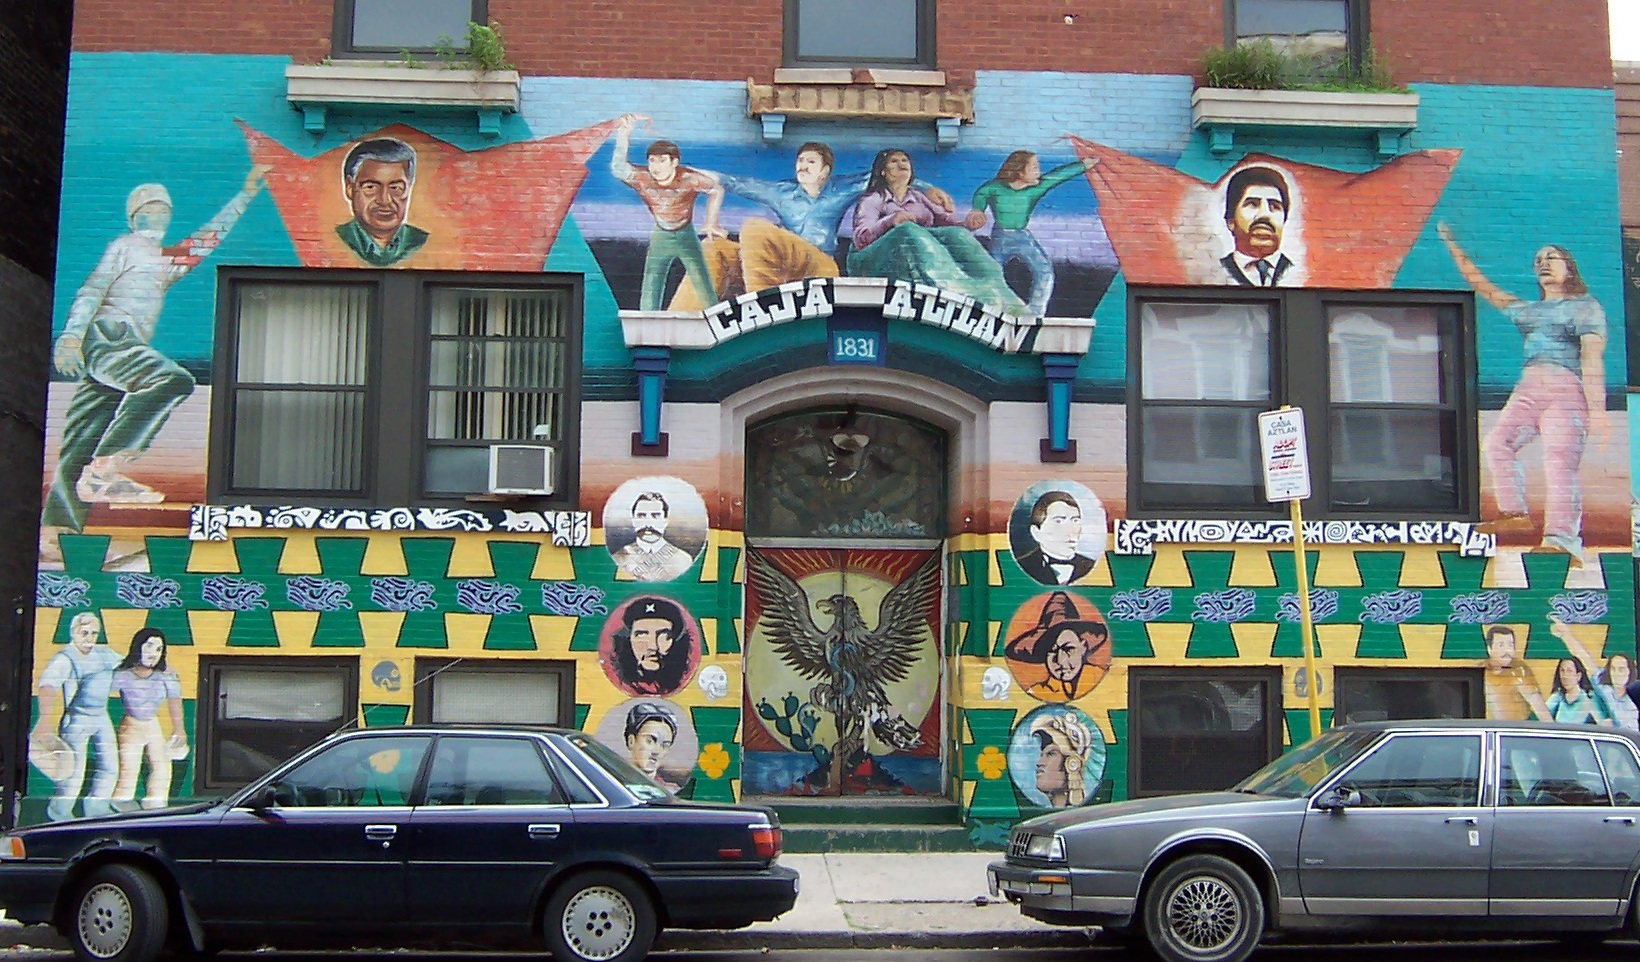 Photo of mural on La Casa Aztlan building in Chicago